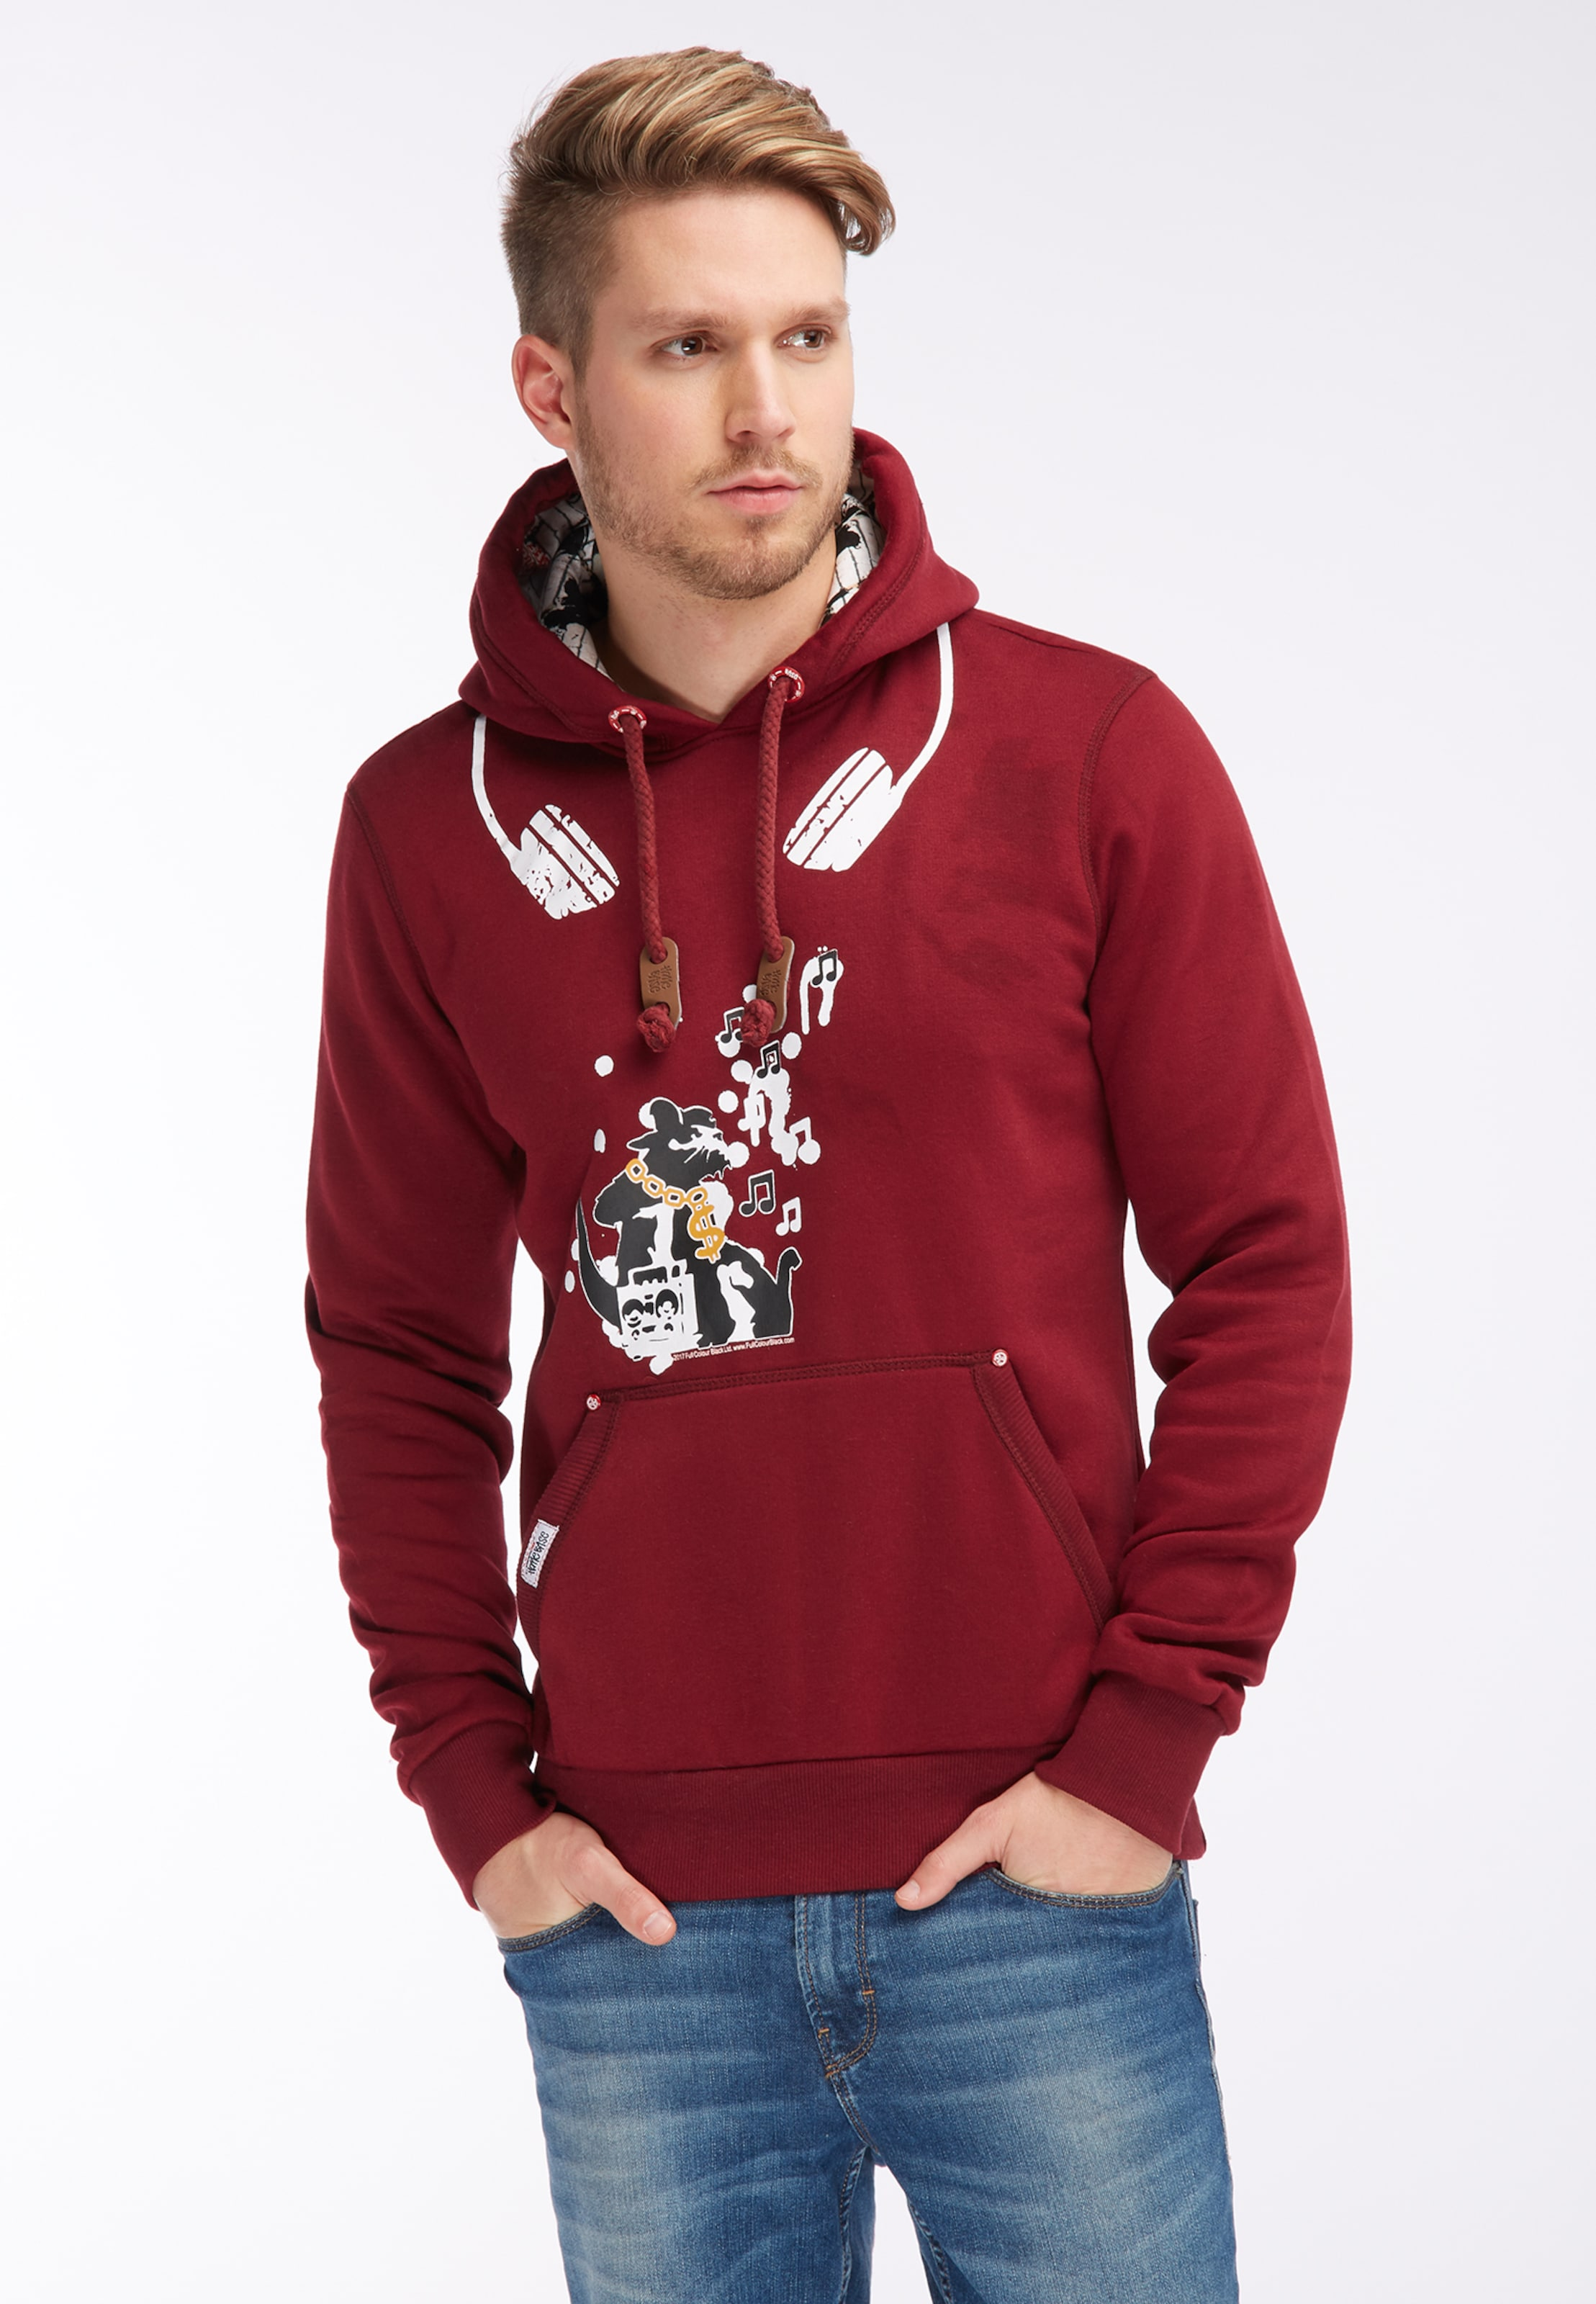 shirt Rouge Sweat Homebase shirt Sweat Homebase En En VSpqUzLMG